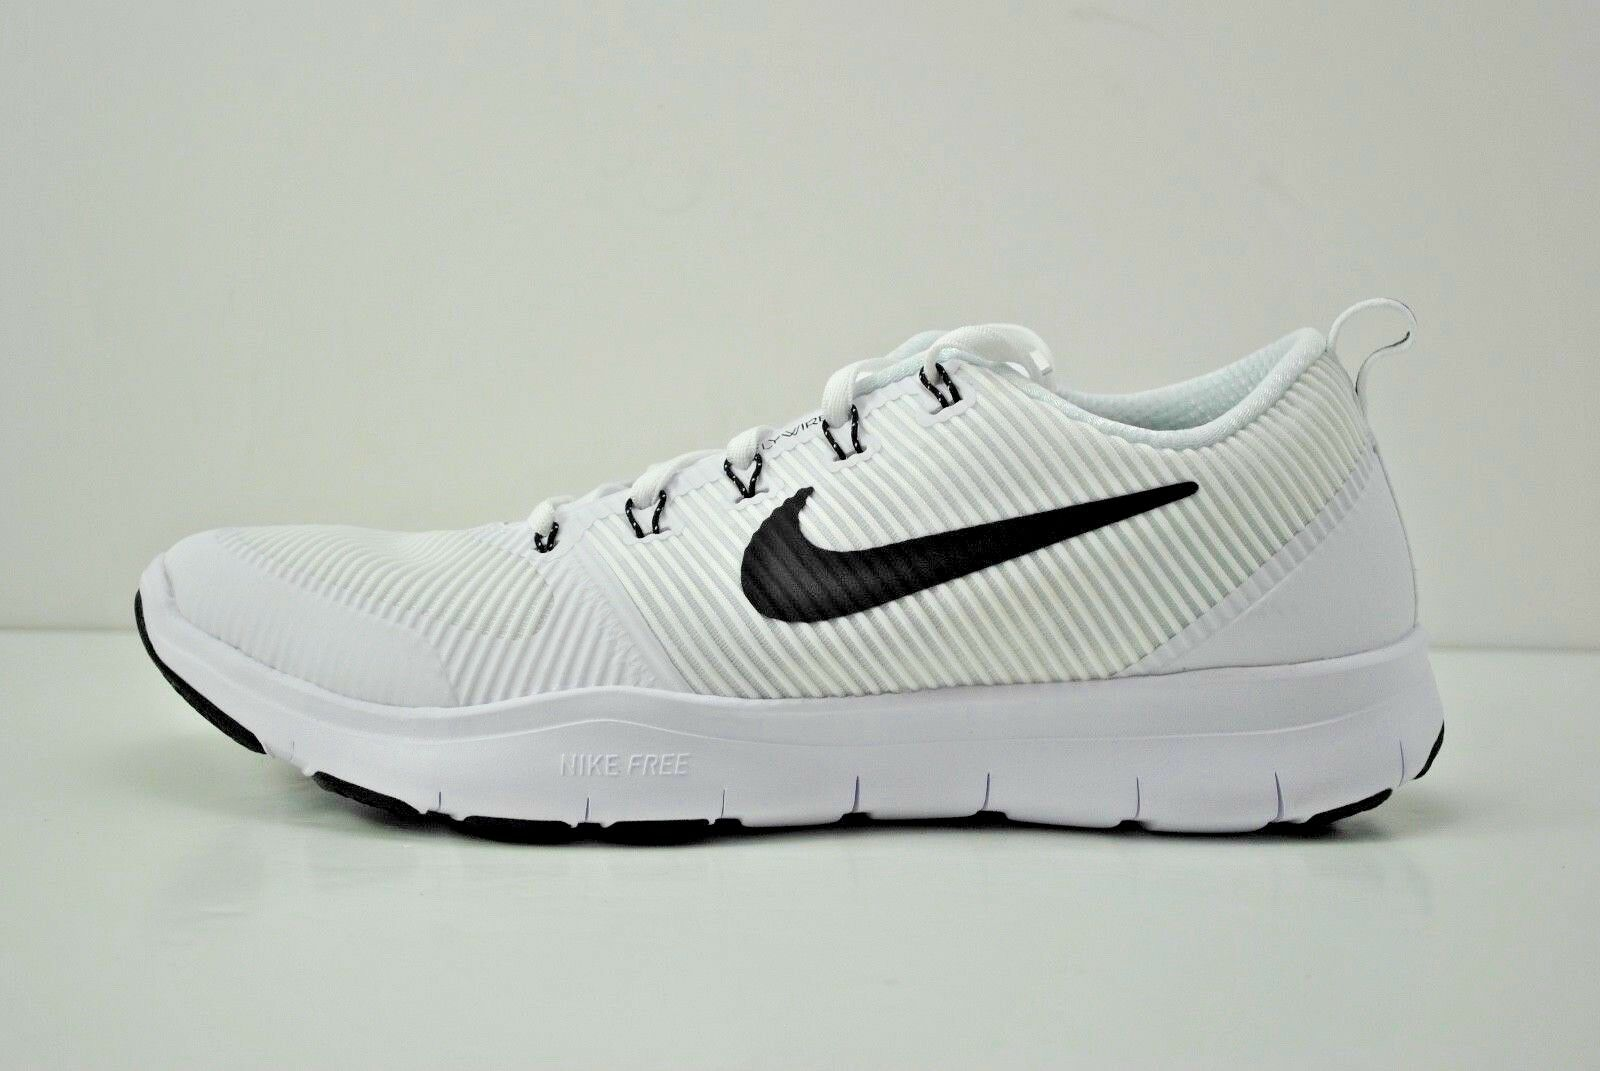 Men Nike Free Train Versatility TB Running Shoes Comfortable best-selling model of the brand